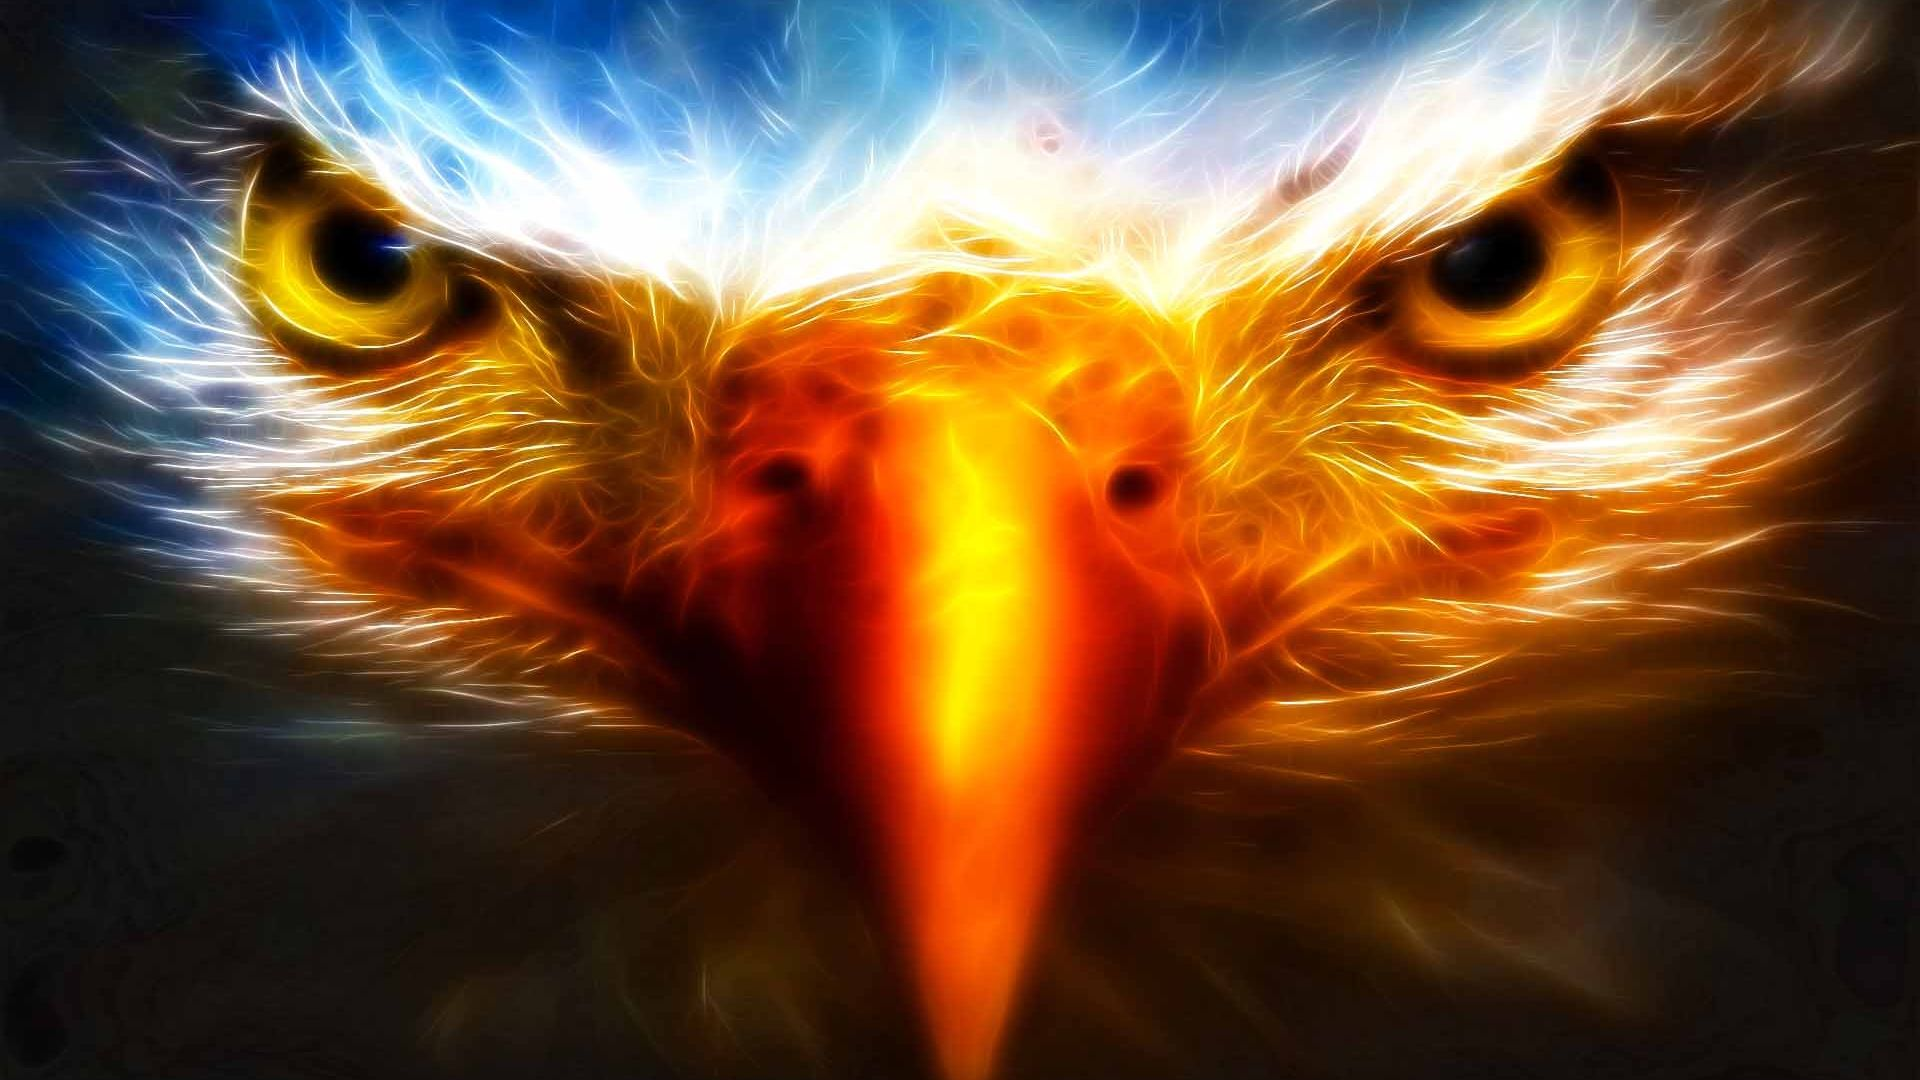 3d Wallpaper Eagle Eyes Widescreen